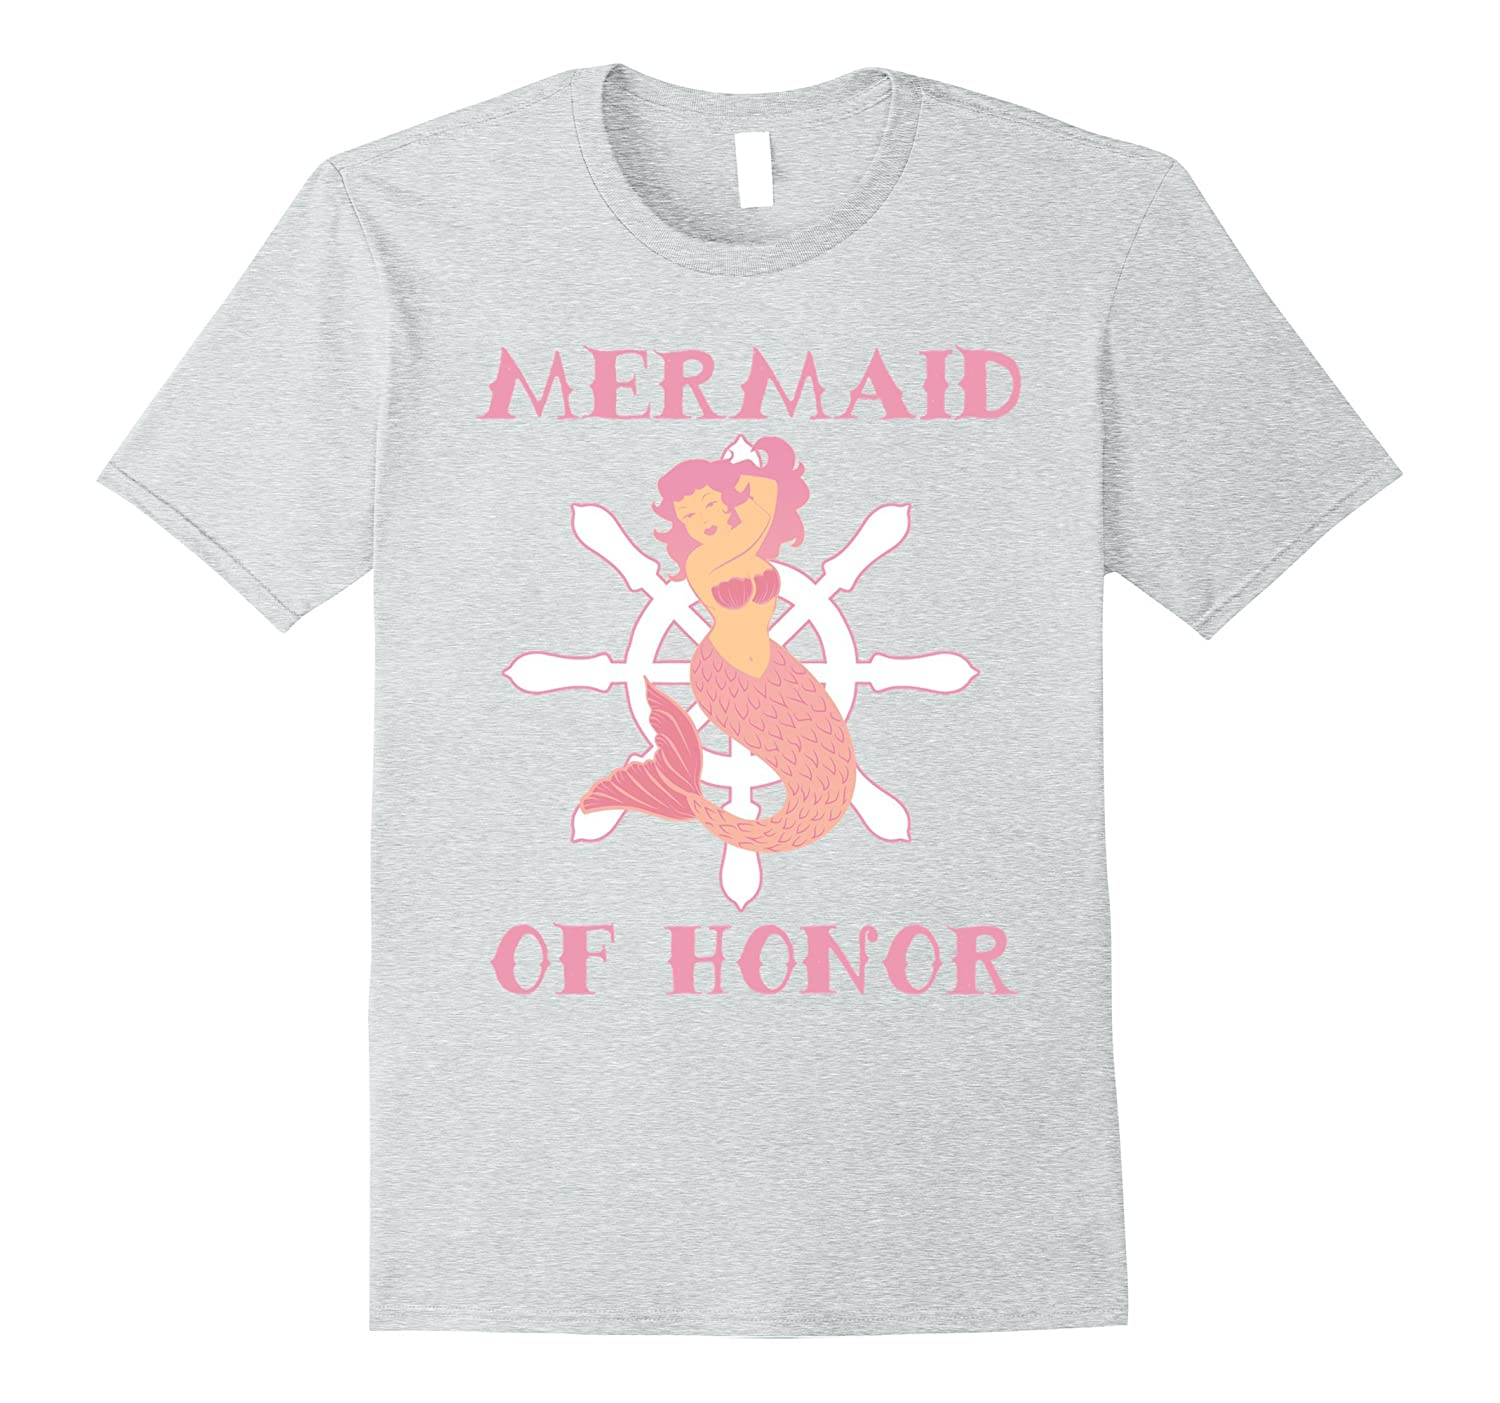 1a6b1edd3 Mermaid Graphic Tee Women Bridal Party Maid of Honor Shirt-TJ ...